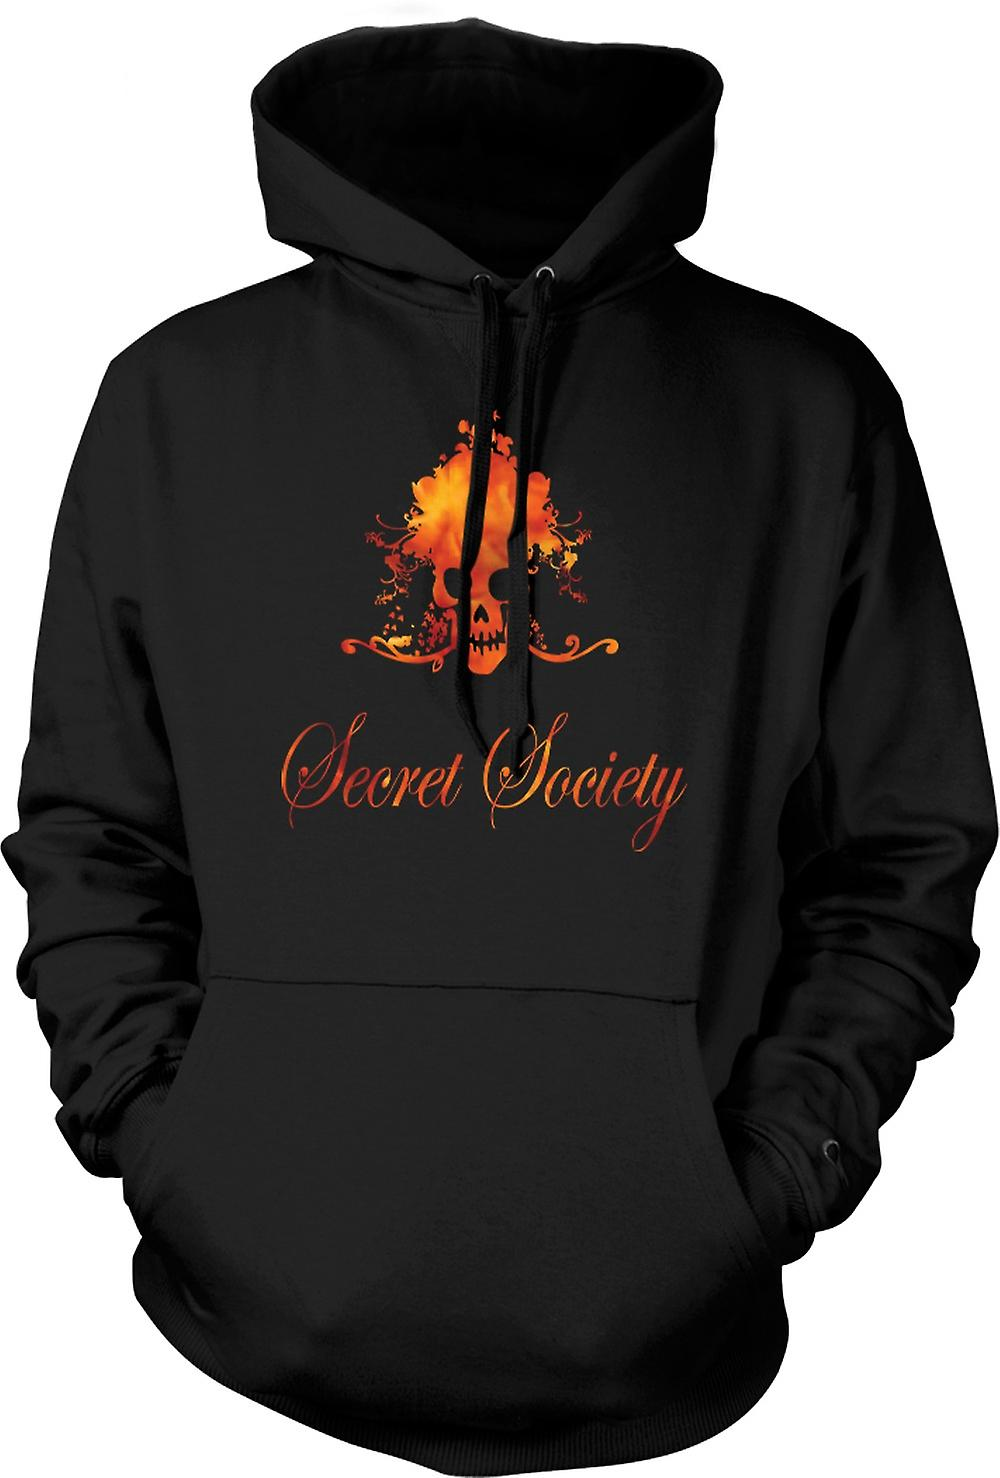 Mens Hoodie - Secret Society - New World Order